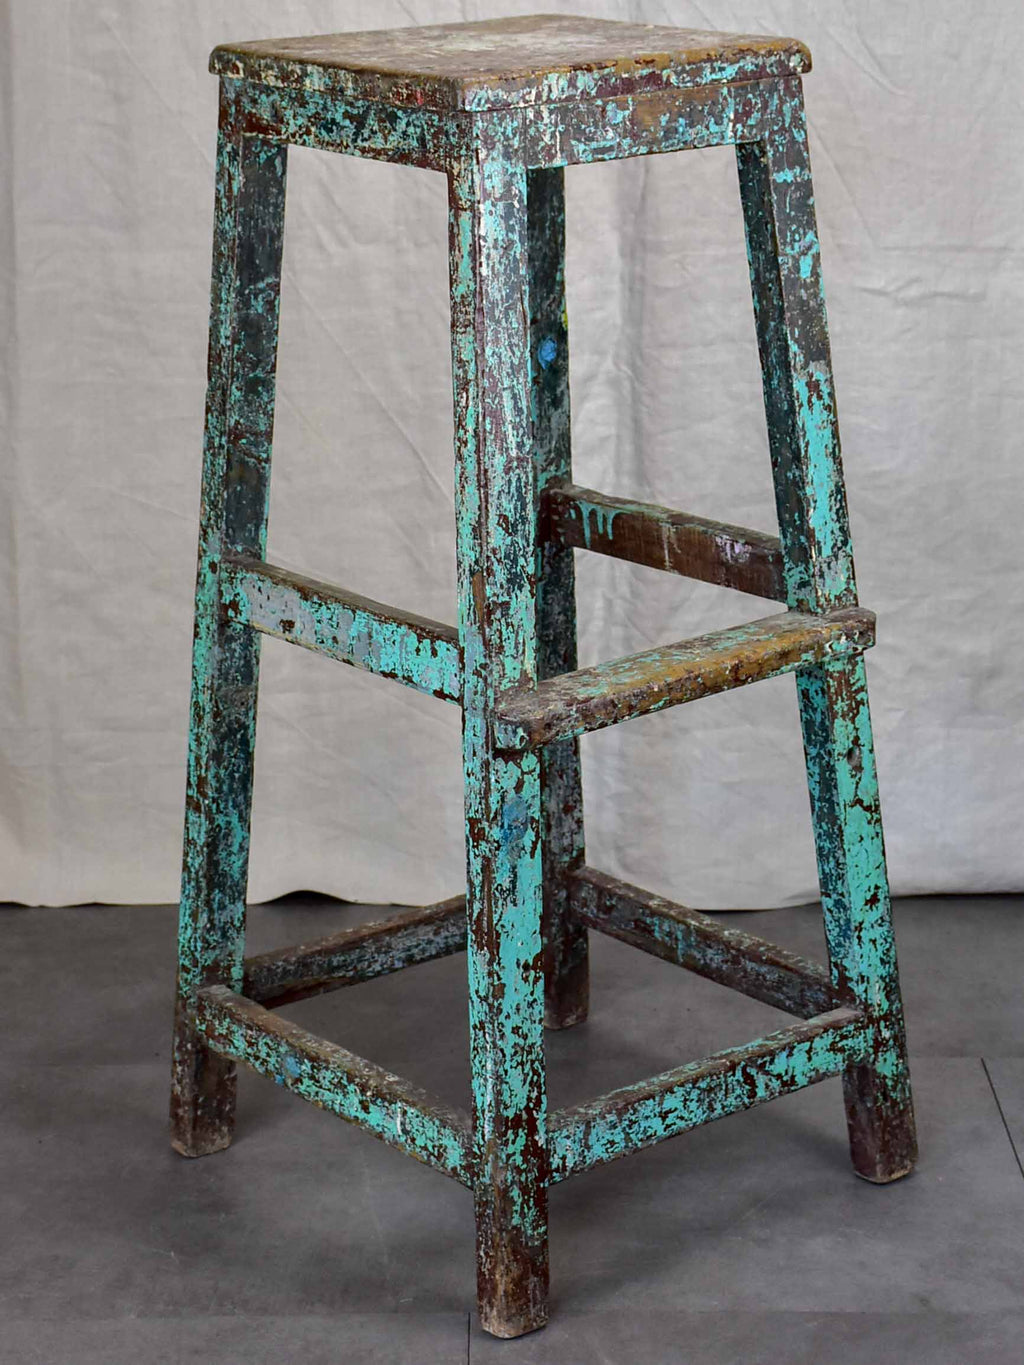 Antique French sculptor's table / high stool - 2 of 3